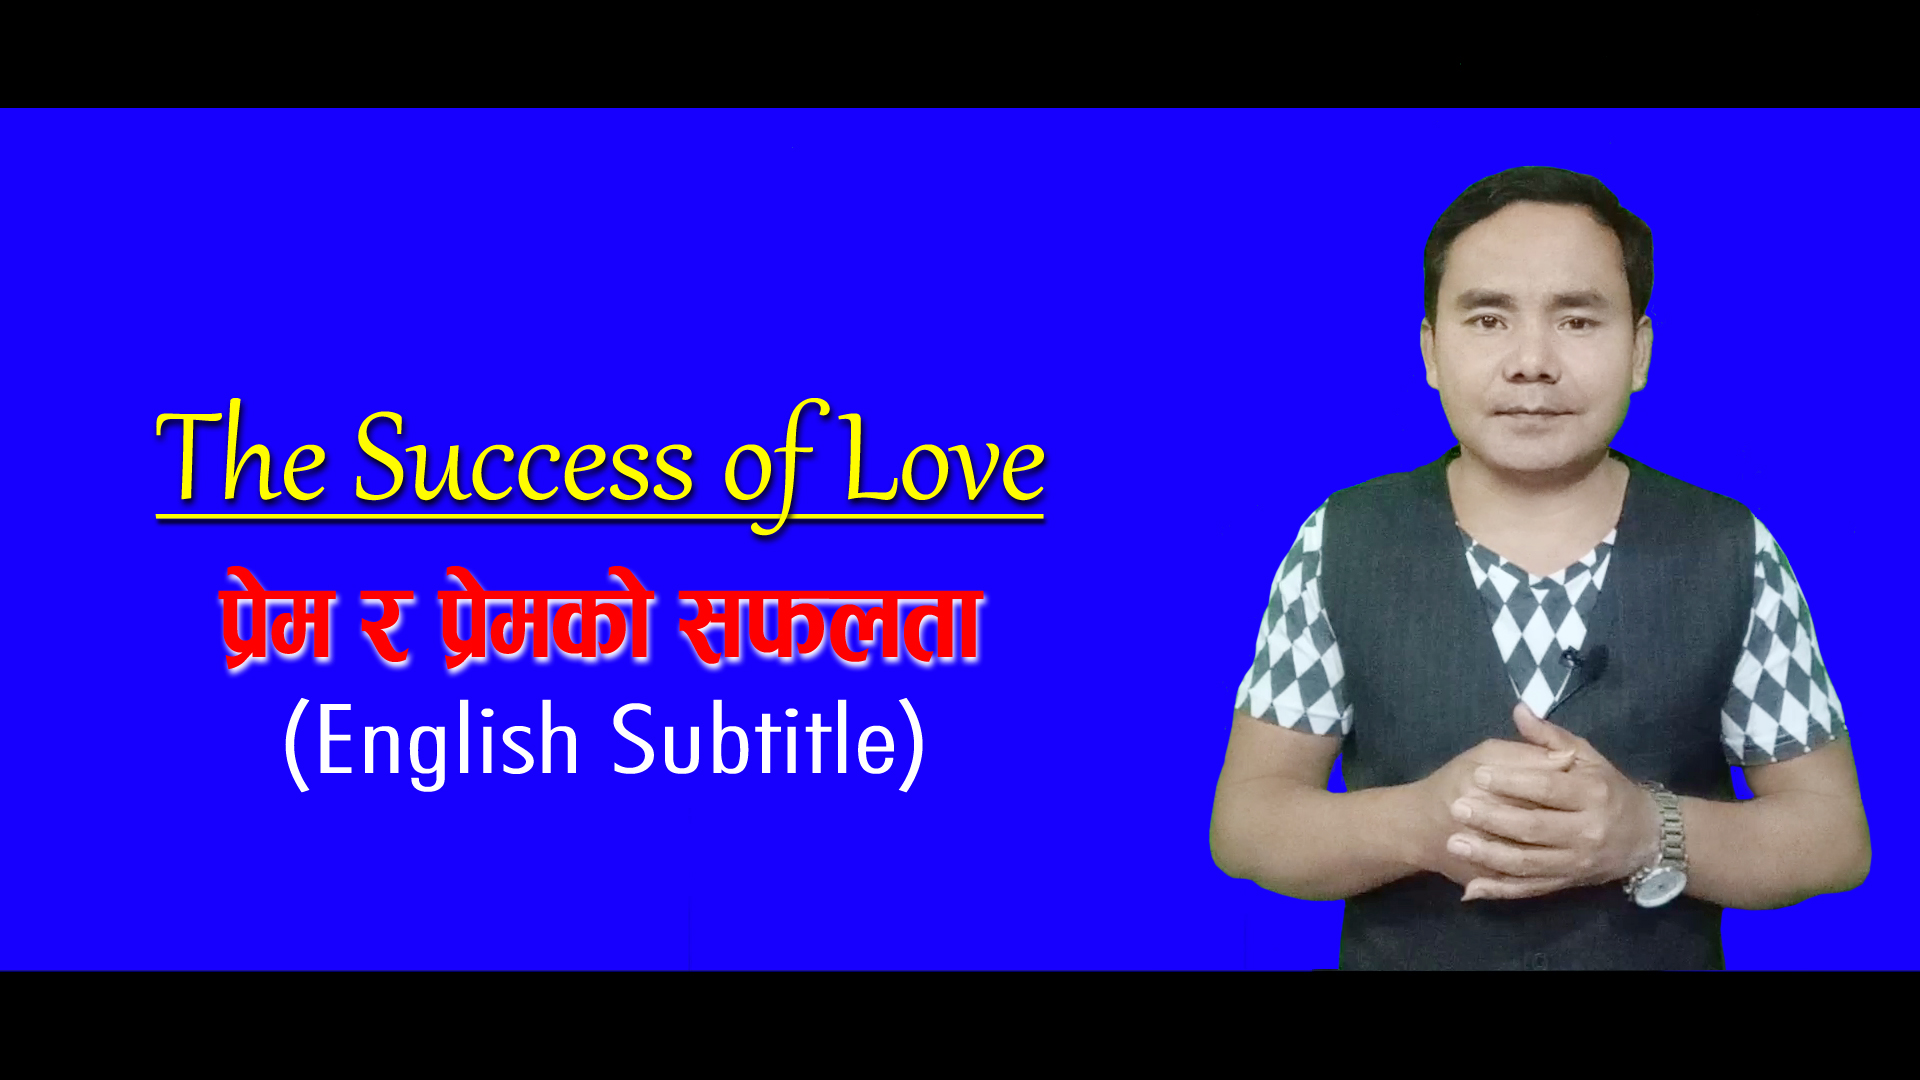 The success of love/Best Inspirational Video